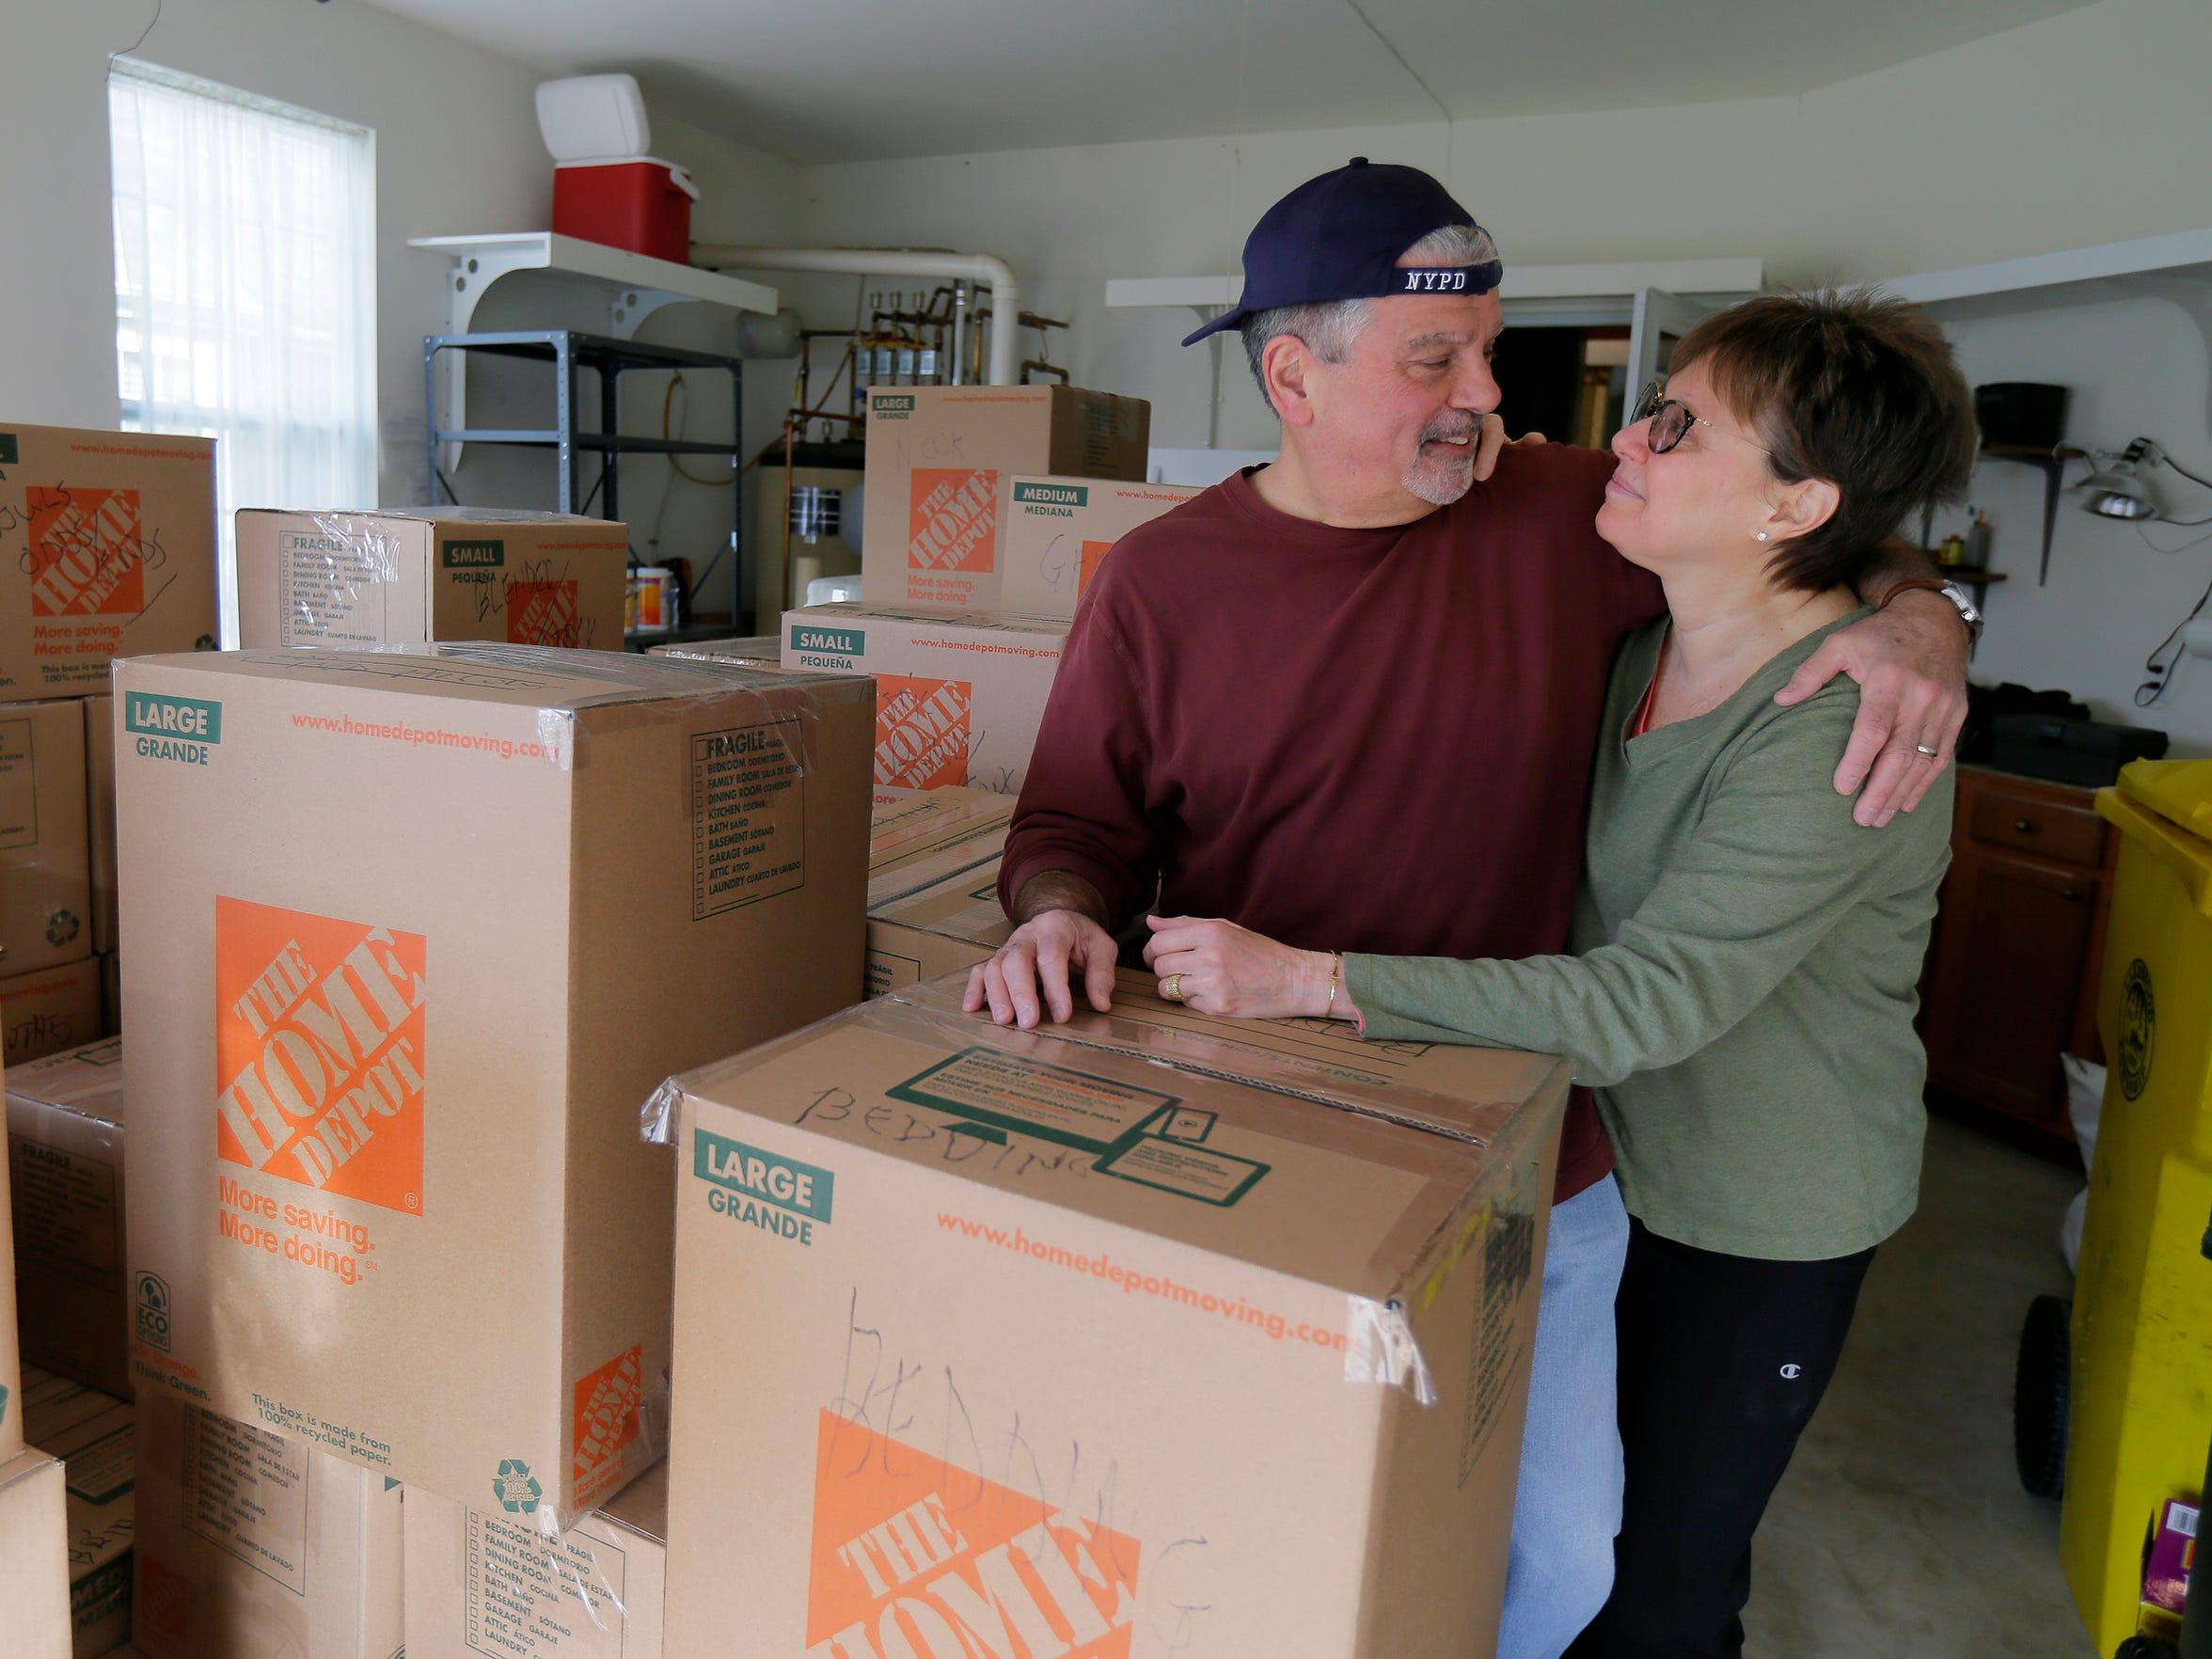 Tom Gatti, the founder of the Senior Action Group in Lakewood and one of the most vocal figures in the opposition to township growth, and his wife, Ellen Gatti, move out of their Lakewood home after 12 years in Lakewood, NJ Monday, March 12, 2018.